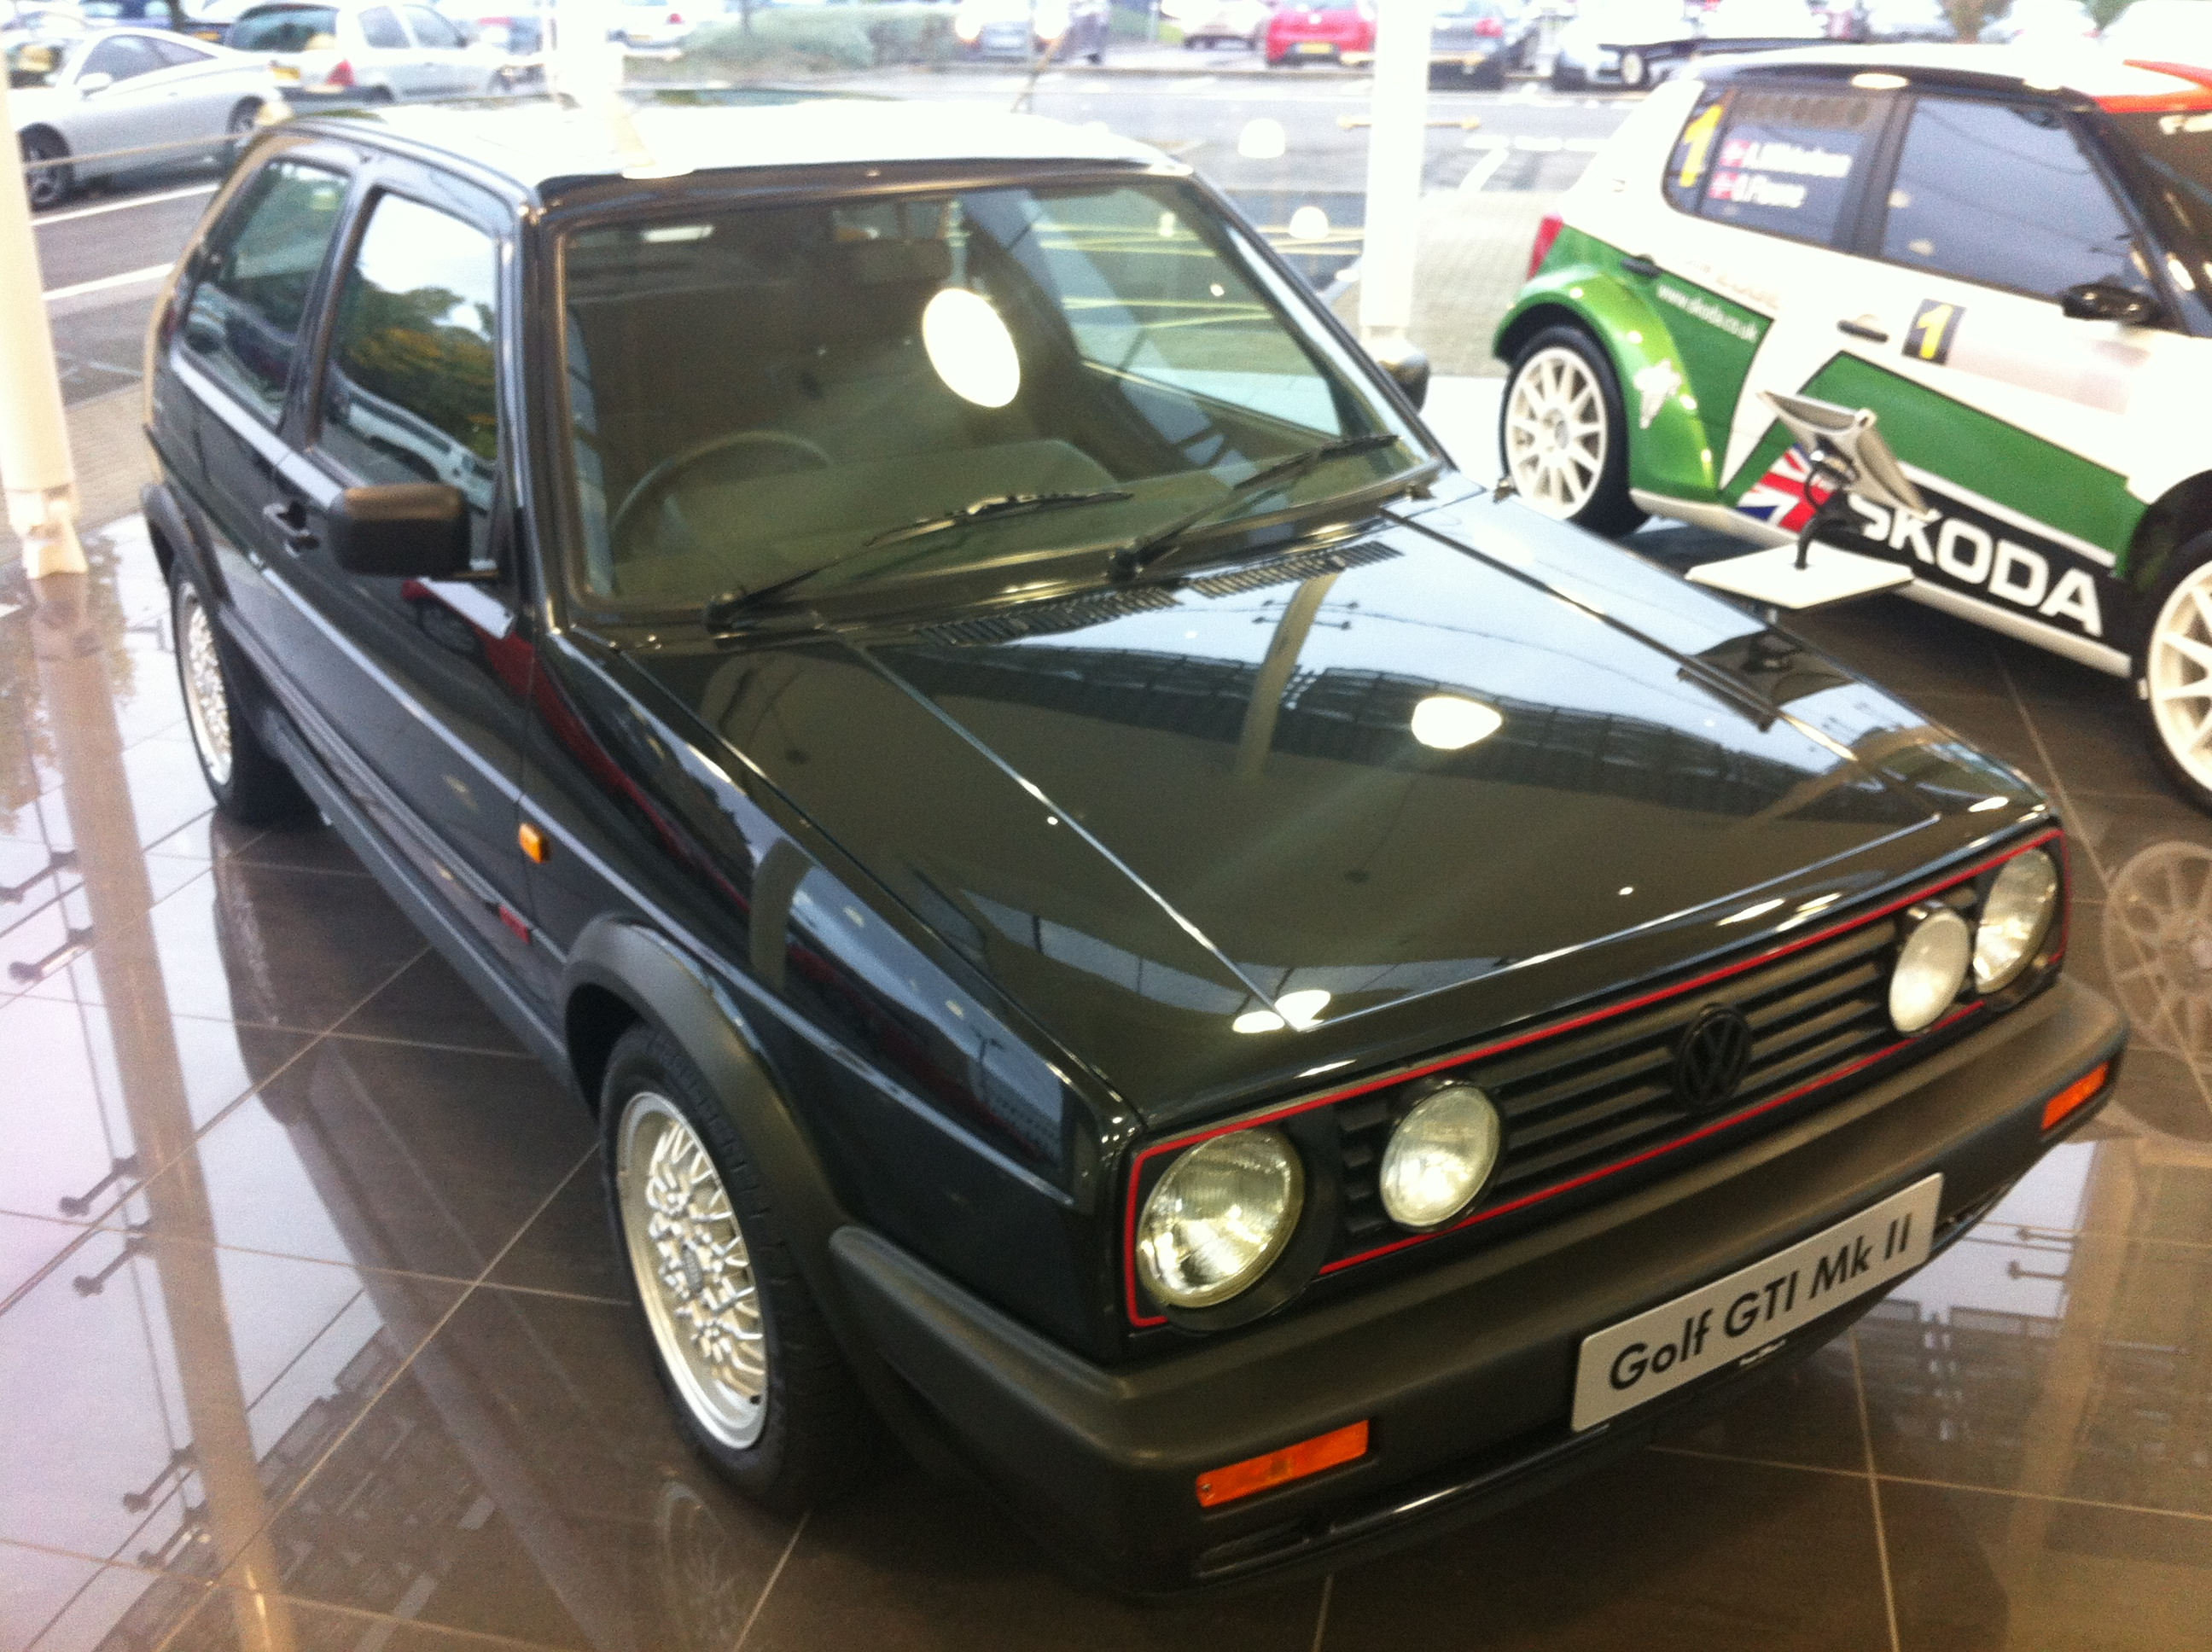 Trade Classics 187 The Best Golf Mk2 In The Country